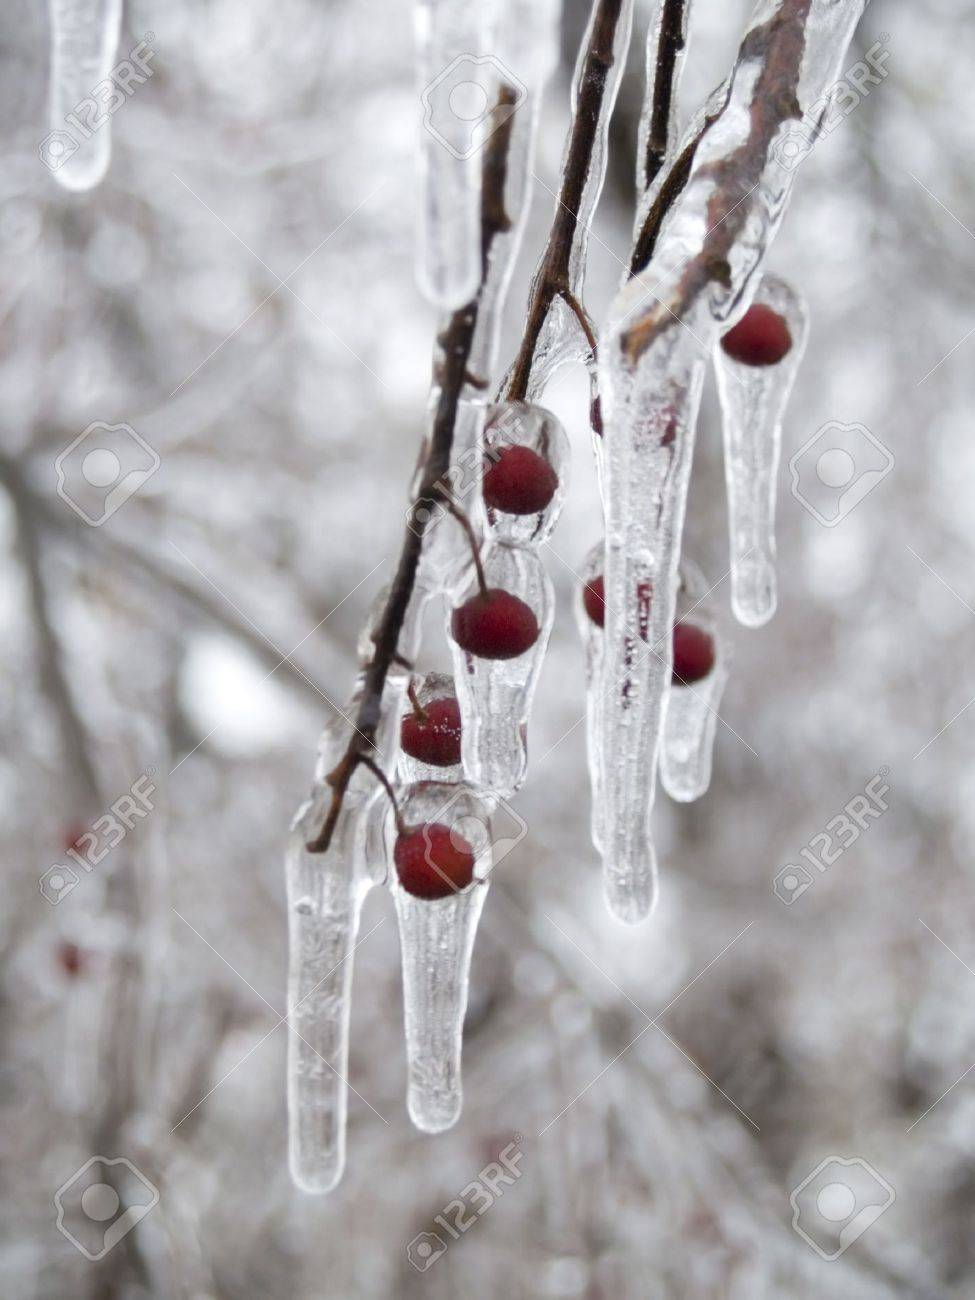 A Tree Branch With Red Berries Coated With Ice And Icicles. Stock ...